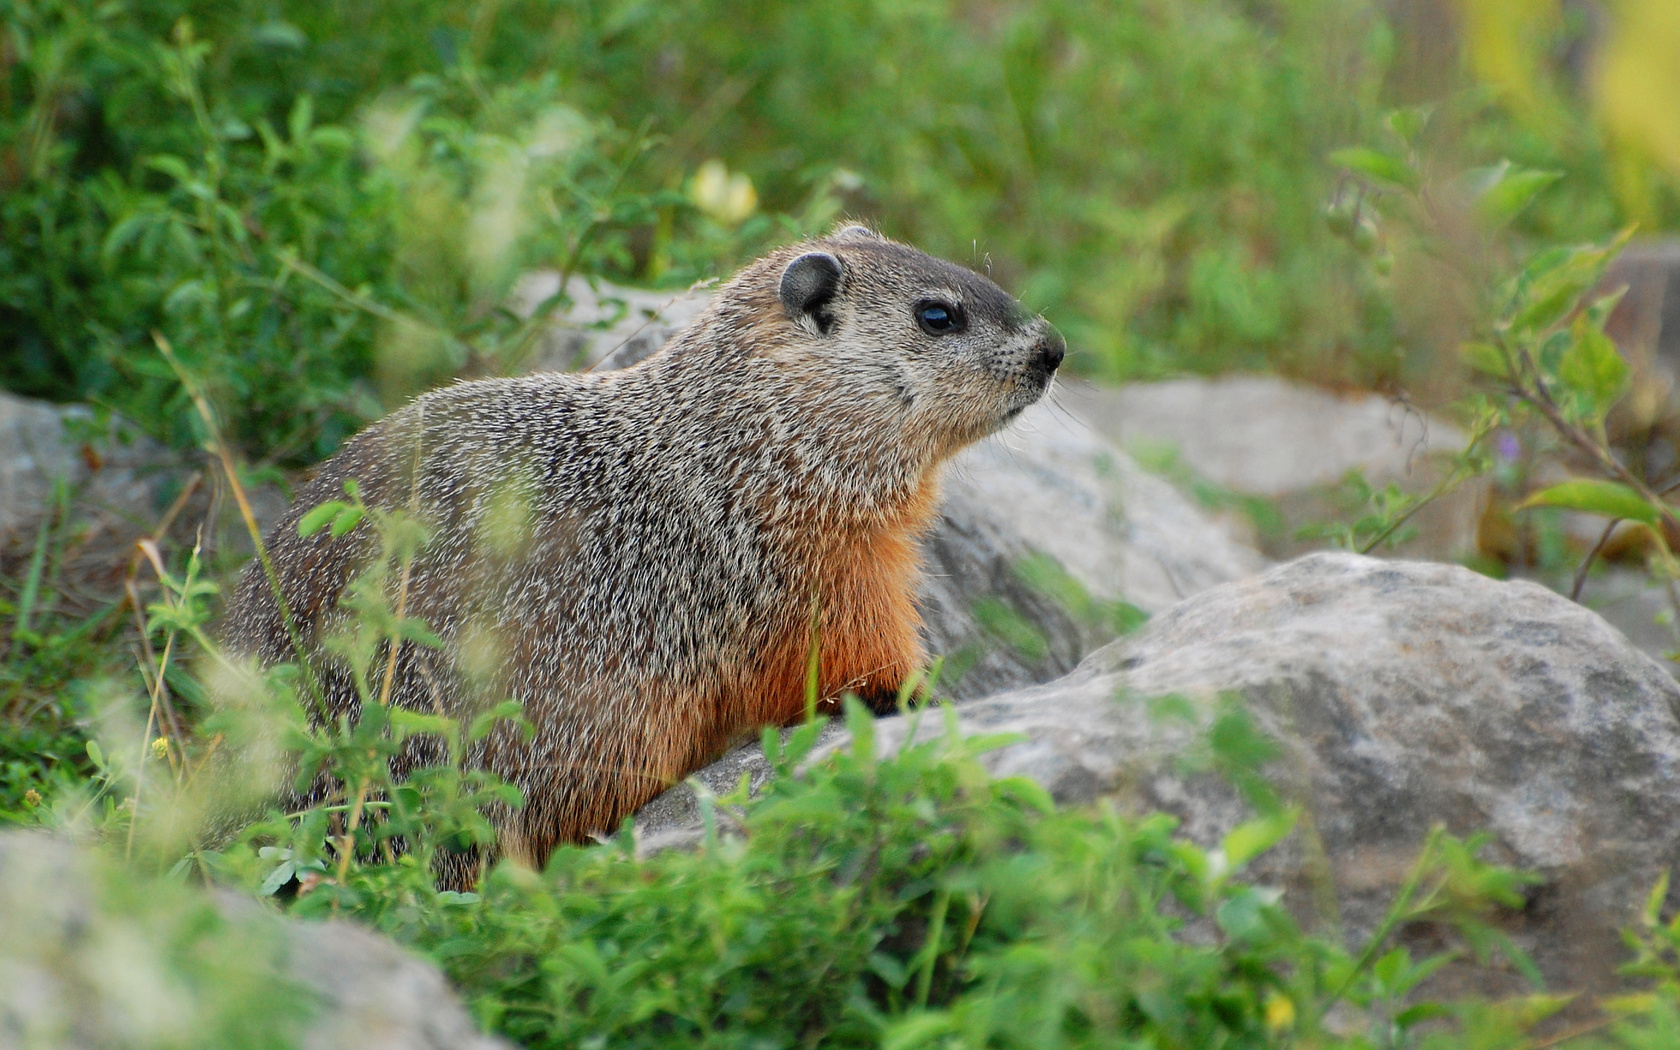 Groundhogs Suzanne Britton Nature Photography Groundhog